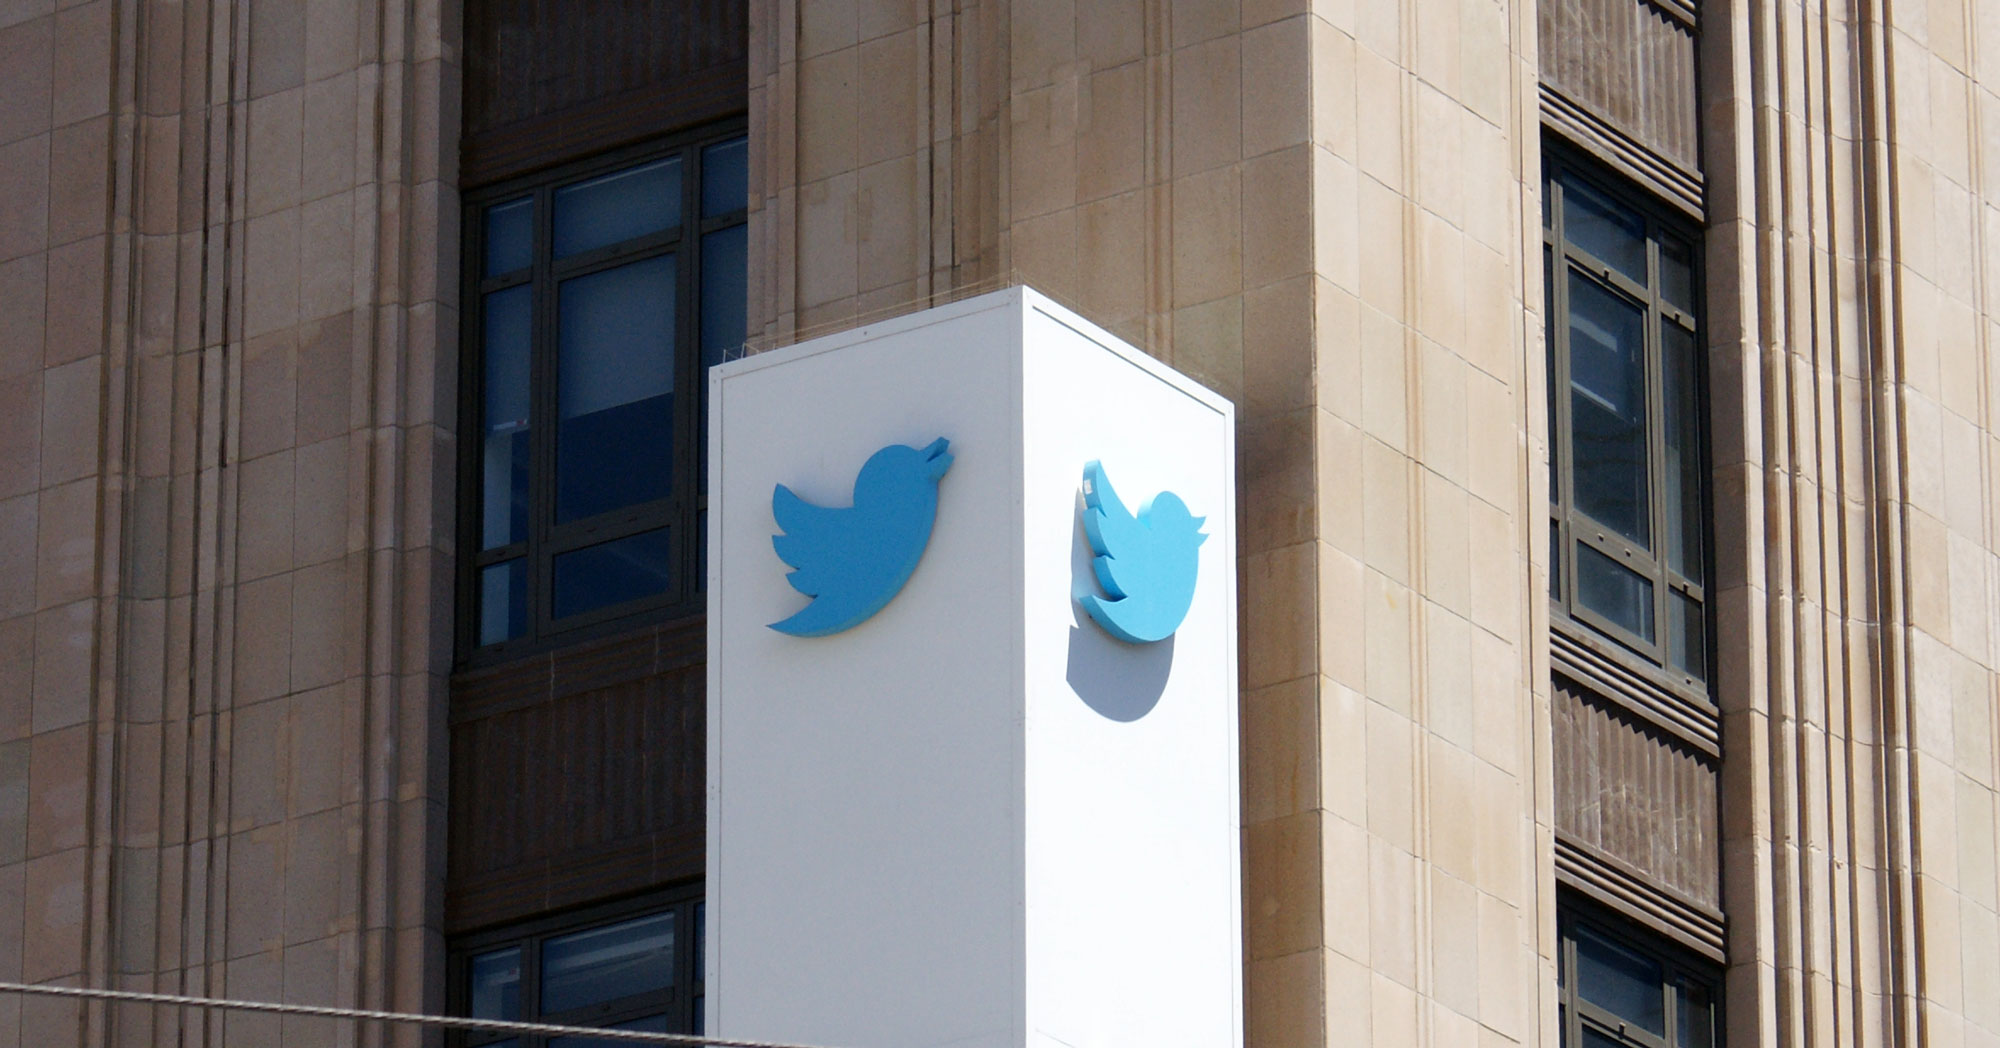 Twitter releases diversity report, 'we have a lot of work to do'